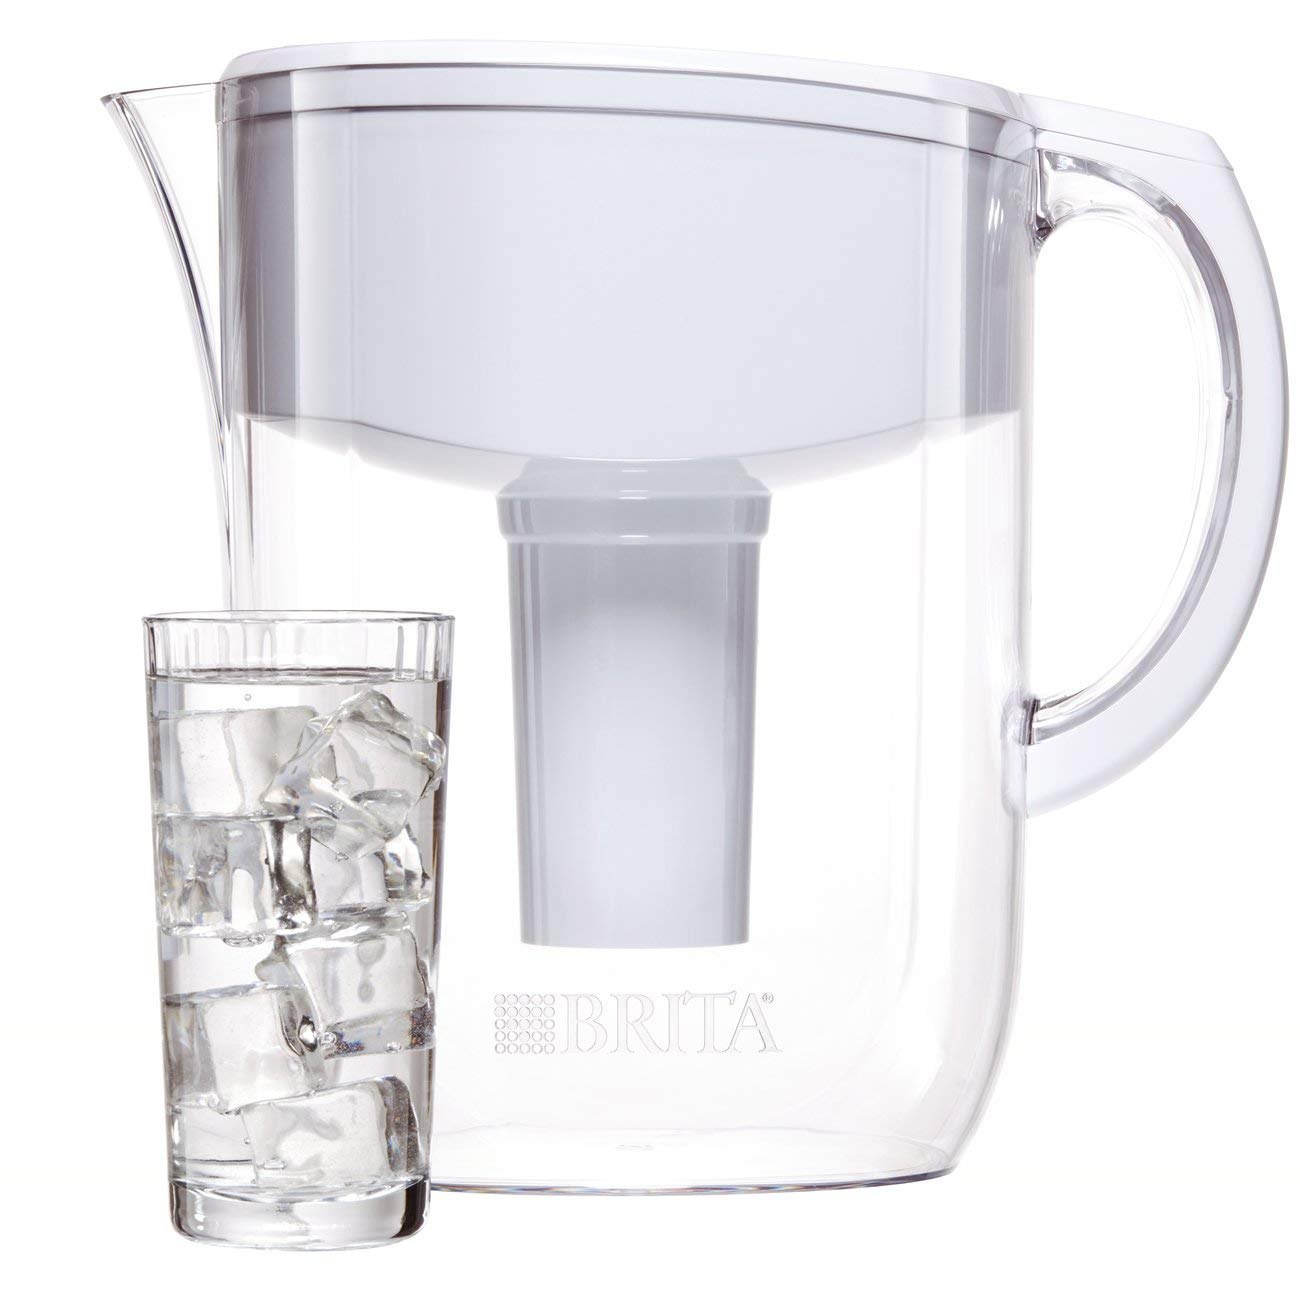 Brita Large 10 Cup Everyday Water Pitcher with Filter - BPA Free - White by Brita (Image #7)